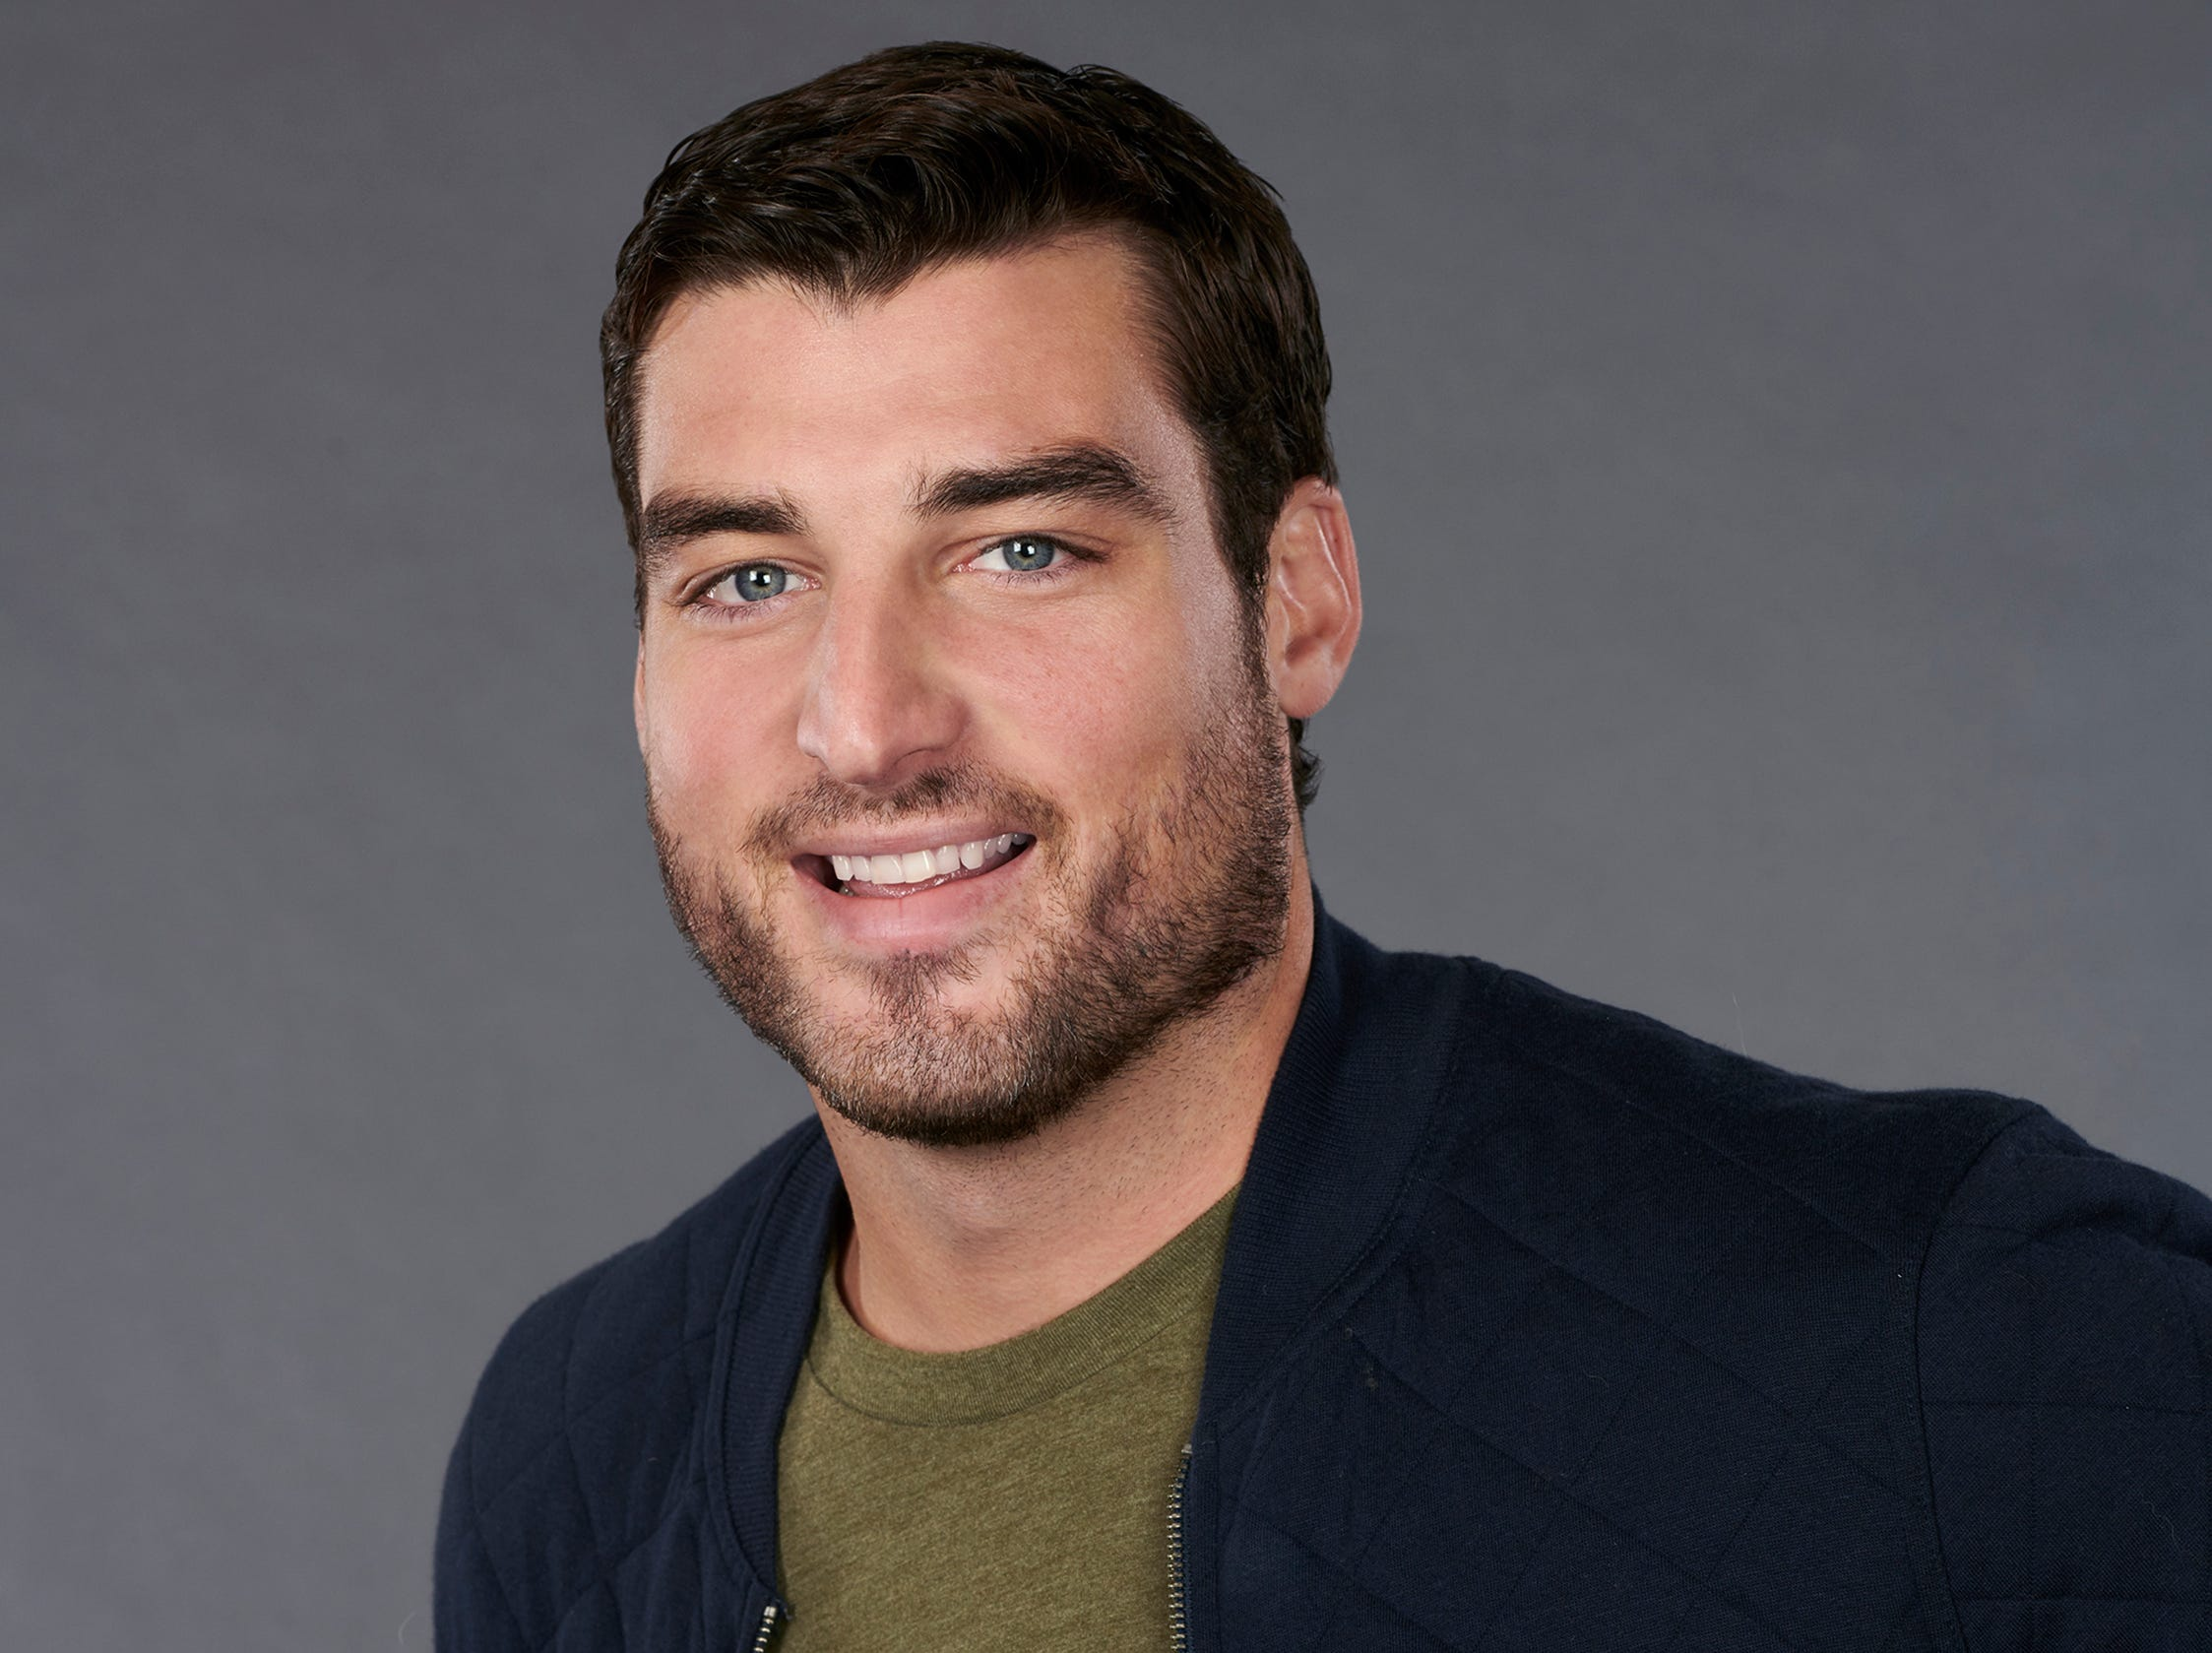 """The Bachelorette"" Season 23 contestant:  Tyler G., 28, Boca Raton, Florida, psychology graduate student"